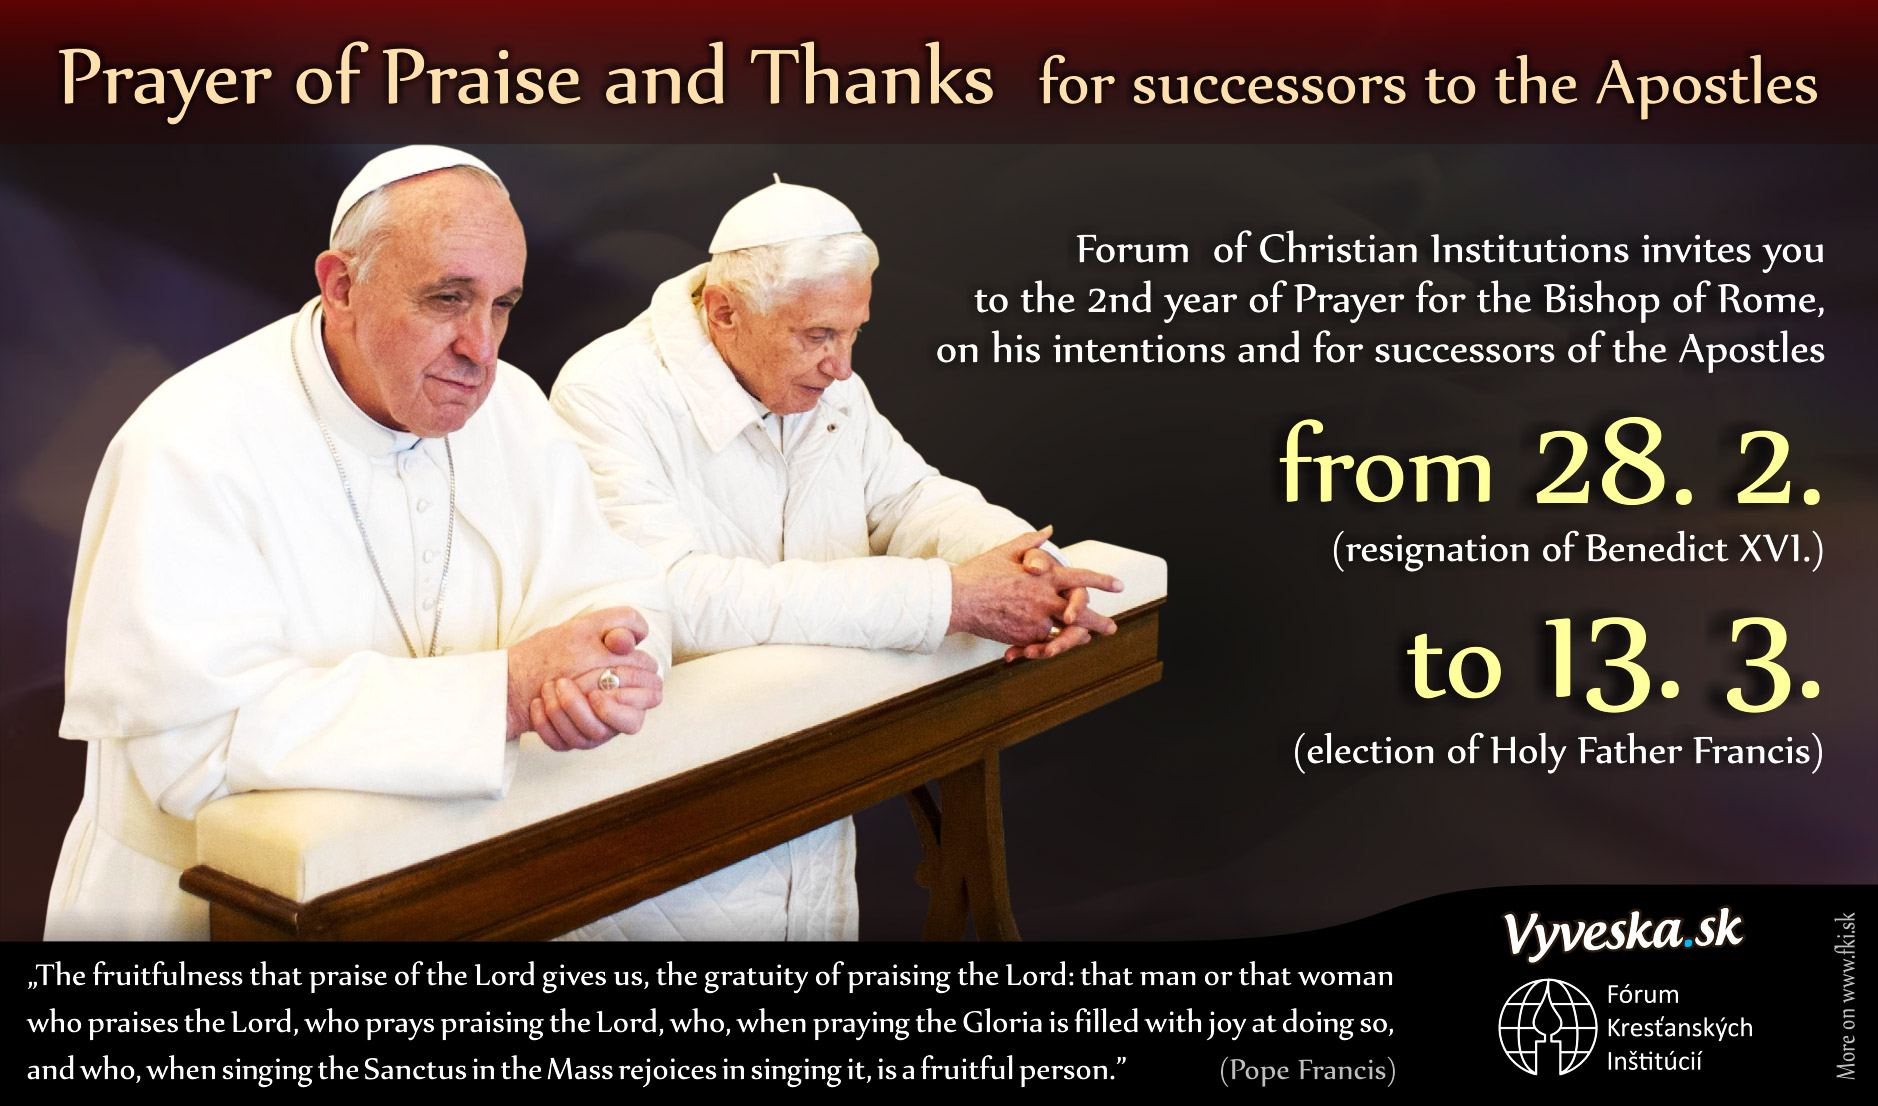 Prayer of praise and thanks for the successors of the Apostles